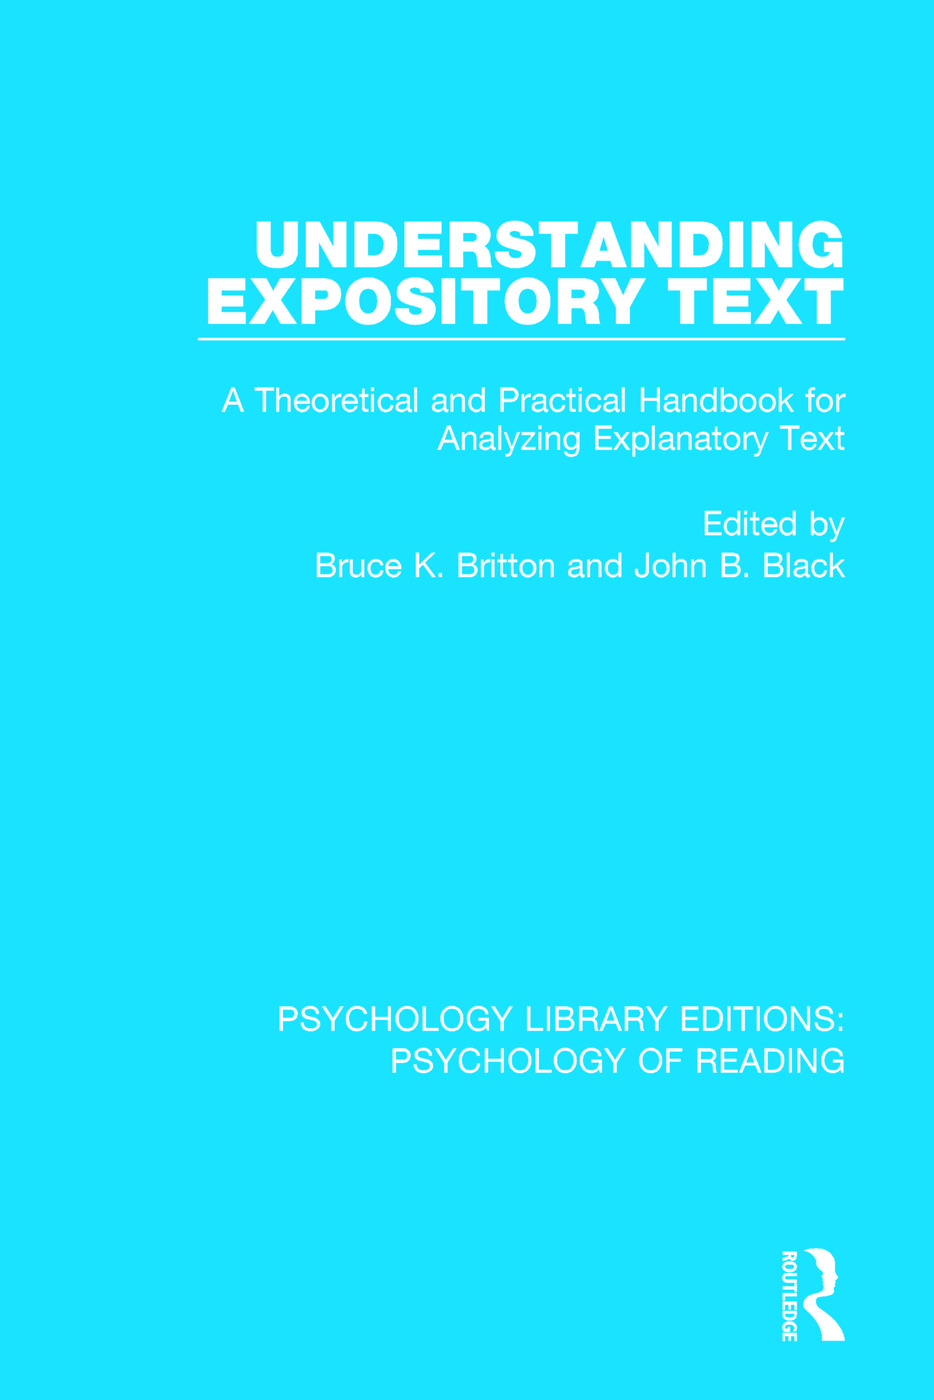 Understanding Expository Text: A Theoretical and Practical Handbook for Analyzing Explanatory Text book cover